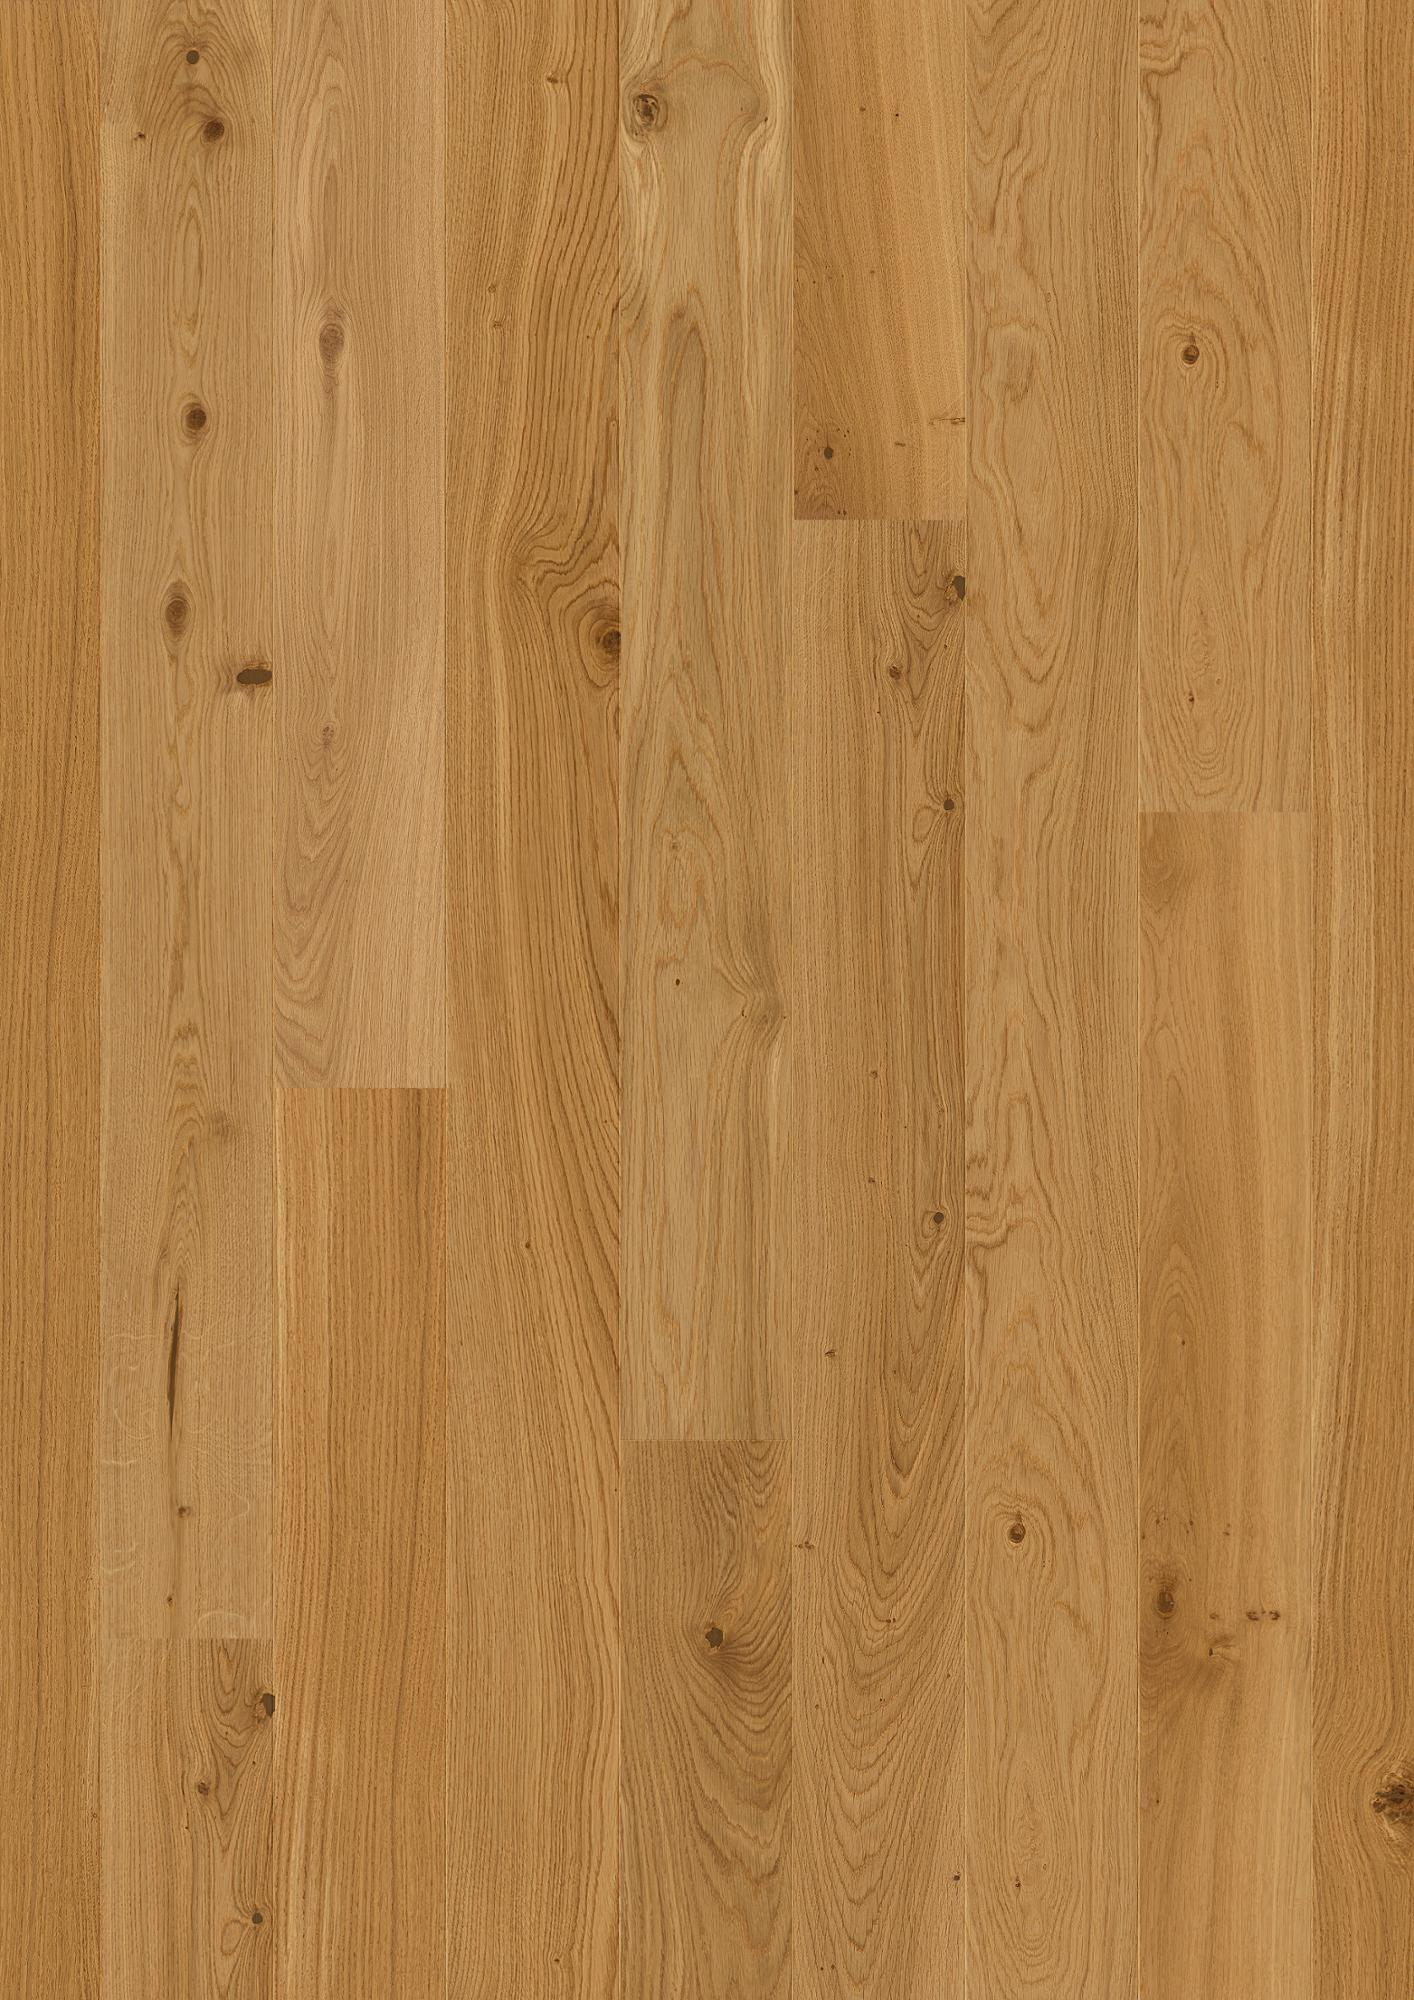 Oak Animoso, Live Matt lacquer, beveled 2V, Plank 138, 14x138x2200mm